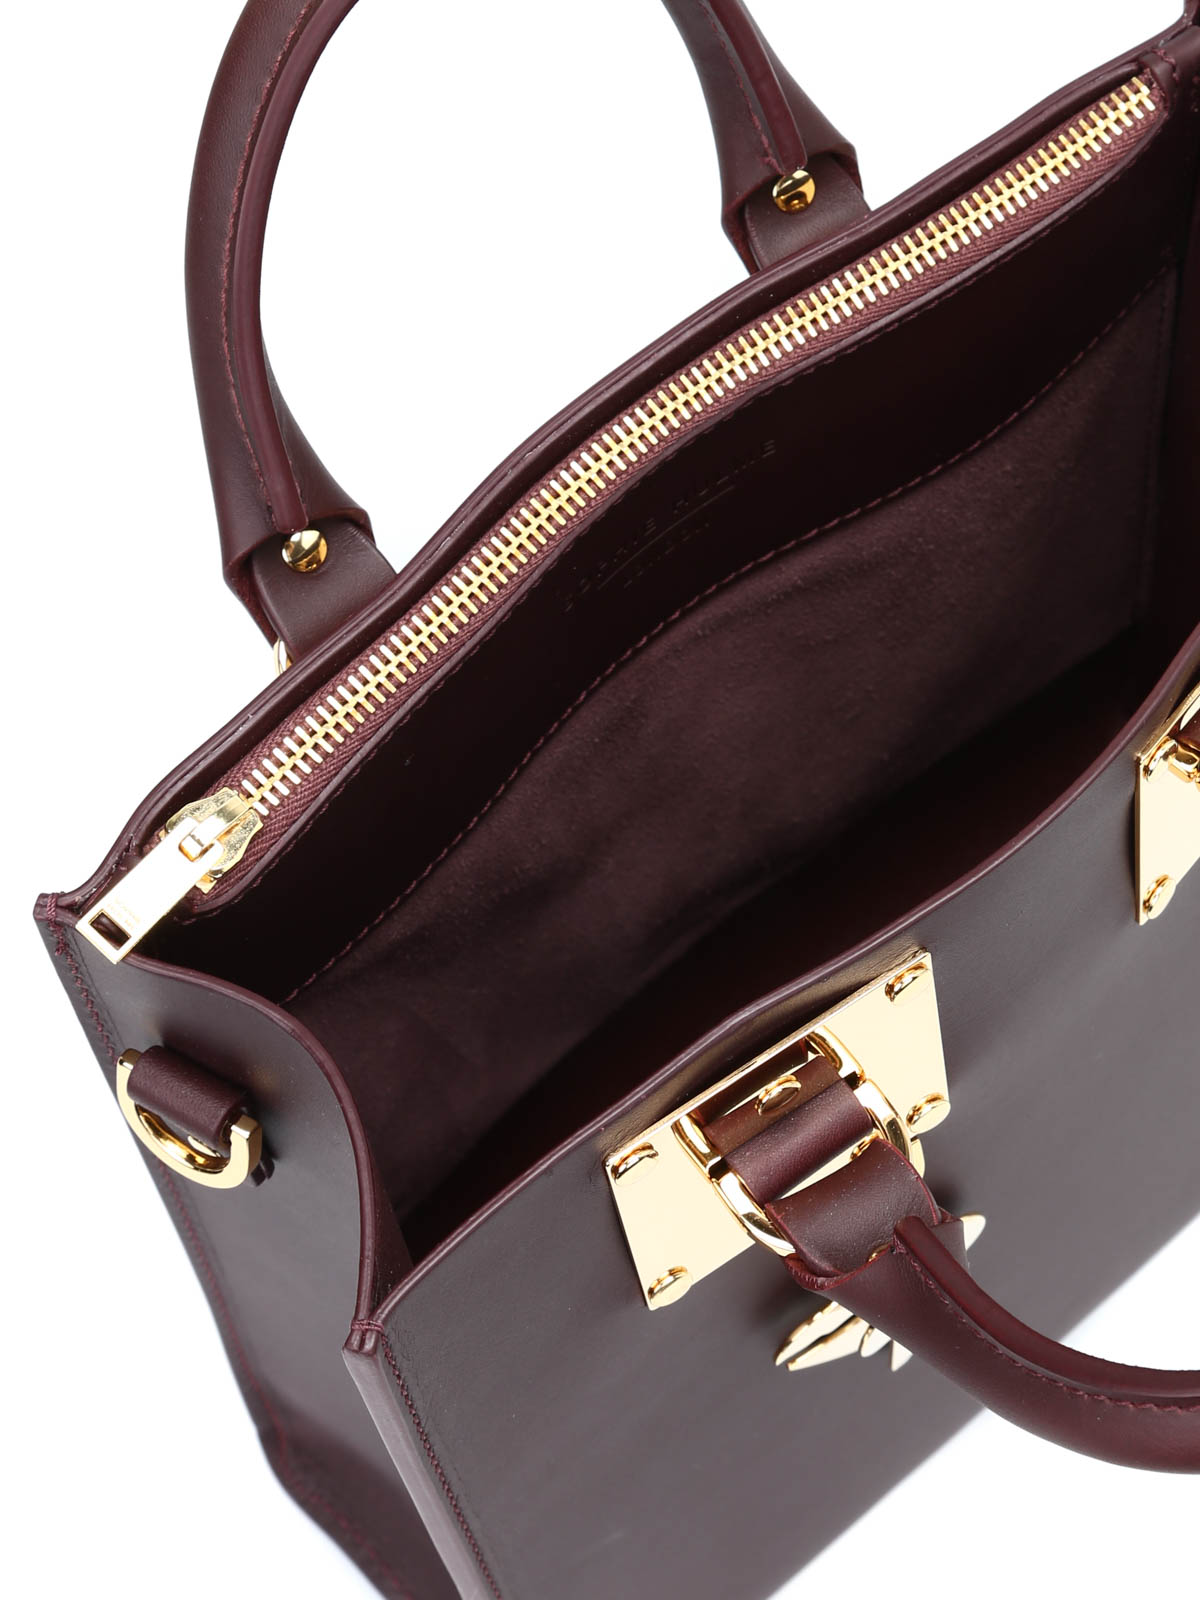 030a0044e Sophie Hulme buy online Albion square tote. Sophie Hulme: totes bags ...